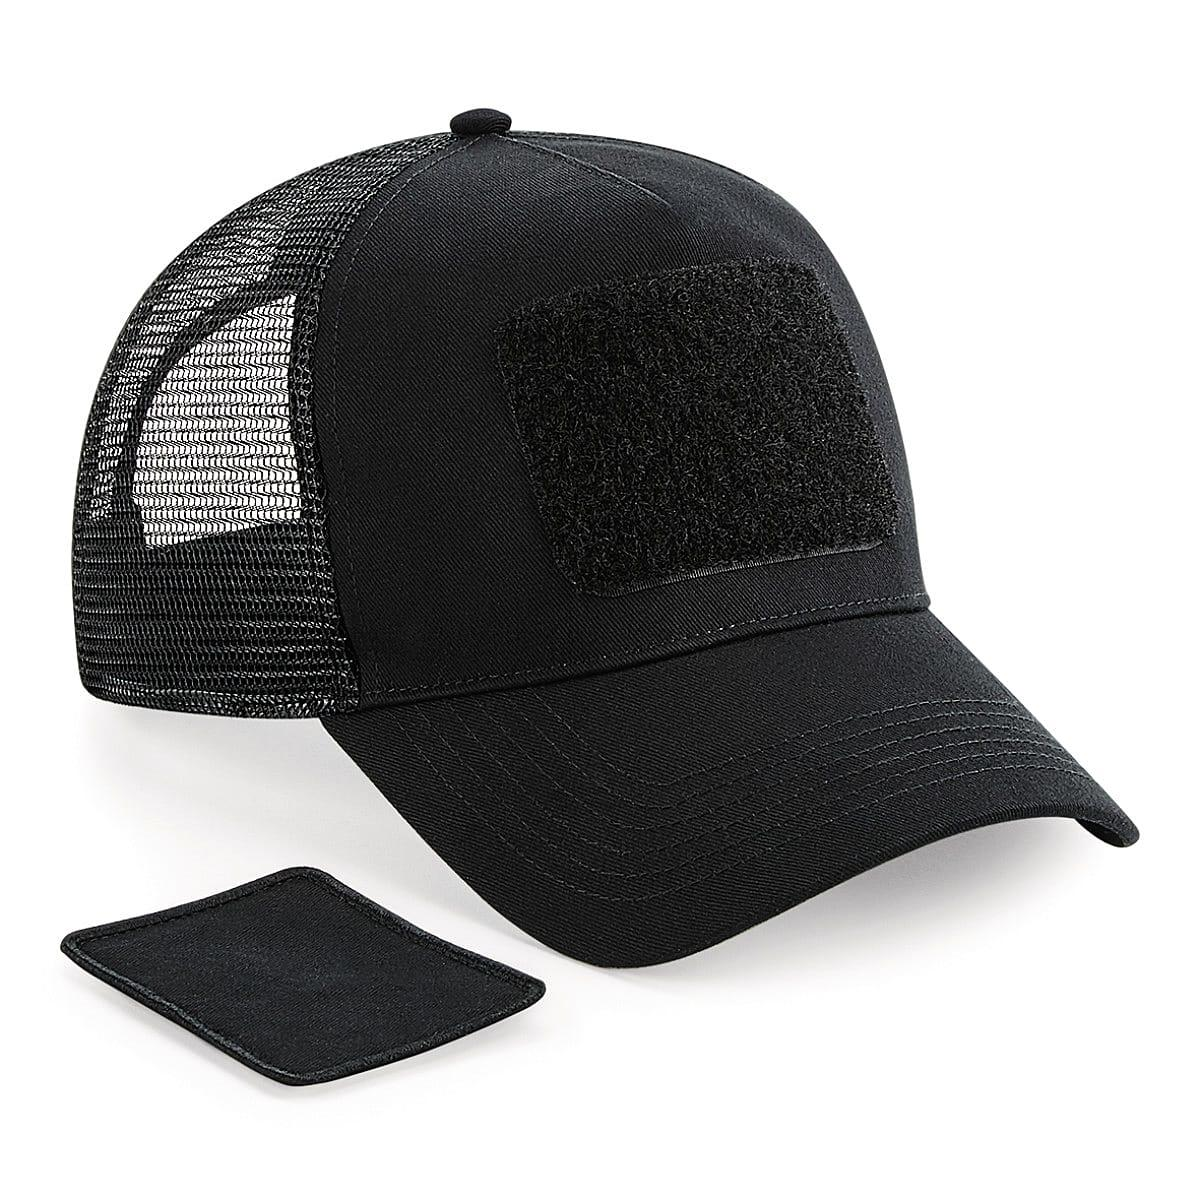 Beechfield Patch Snapback Trucker Cap in Black (Product Code: B641)